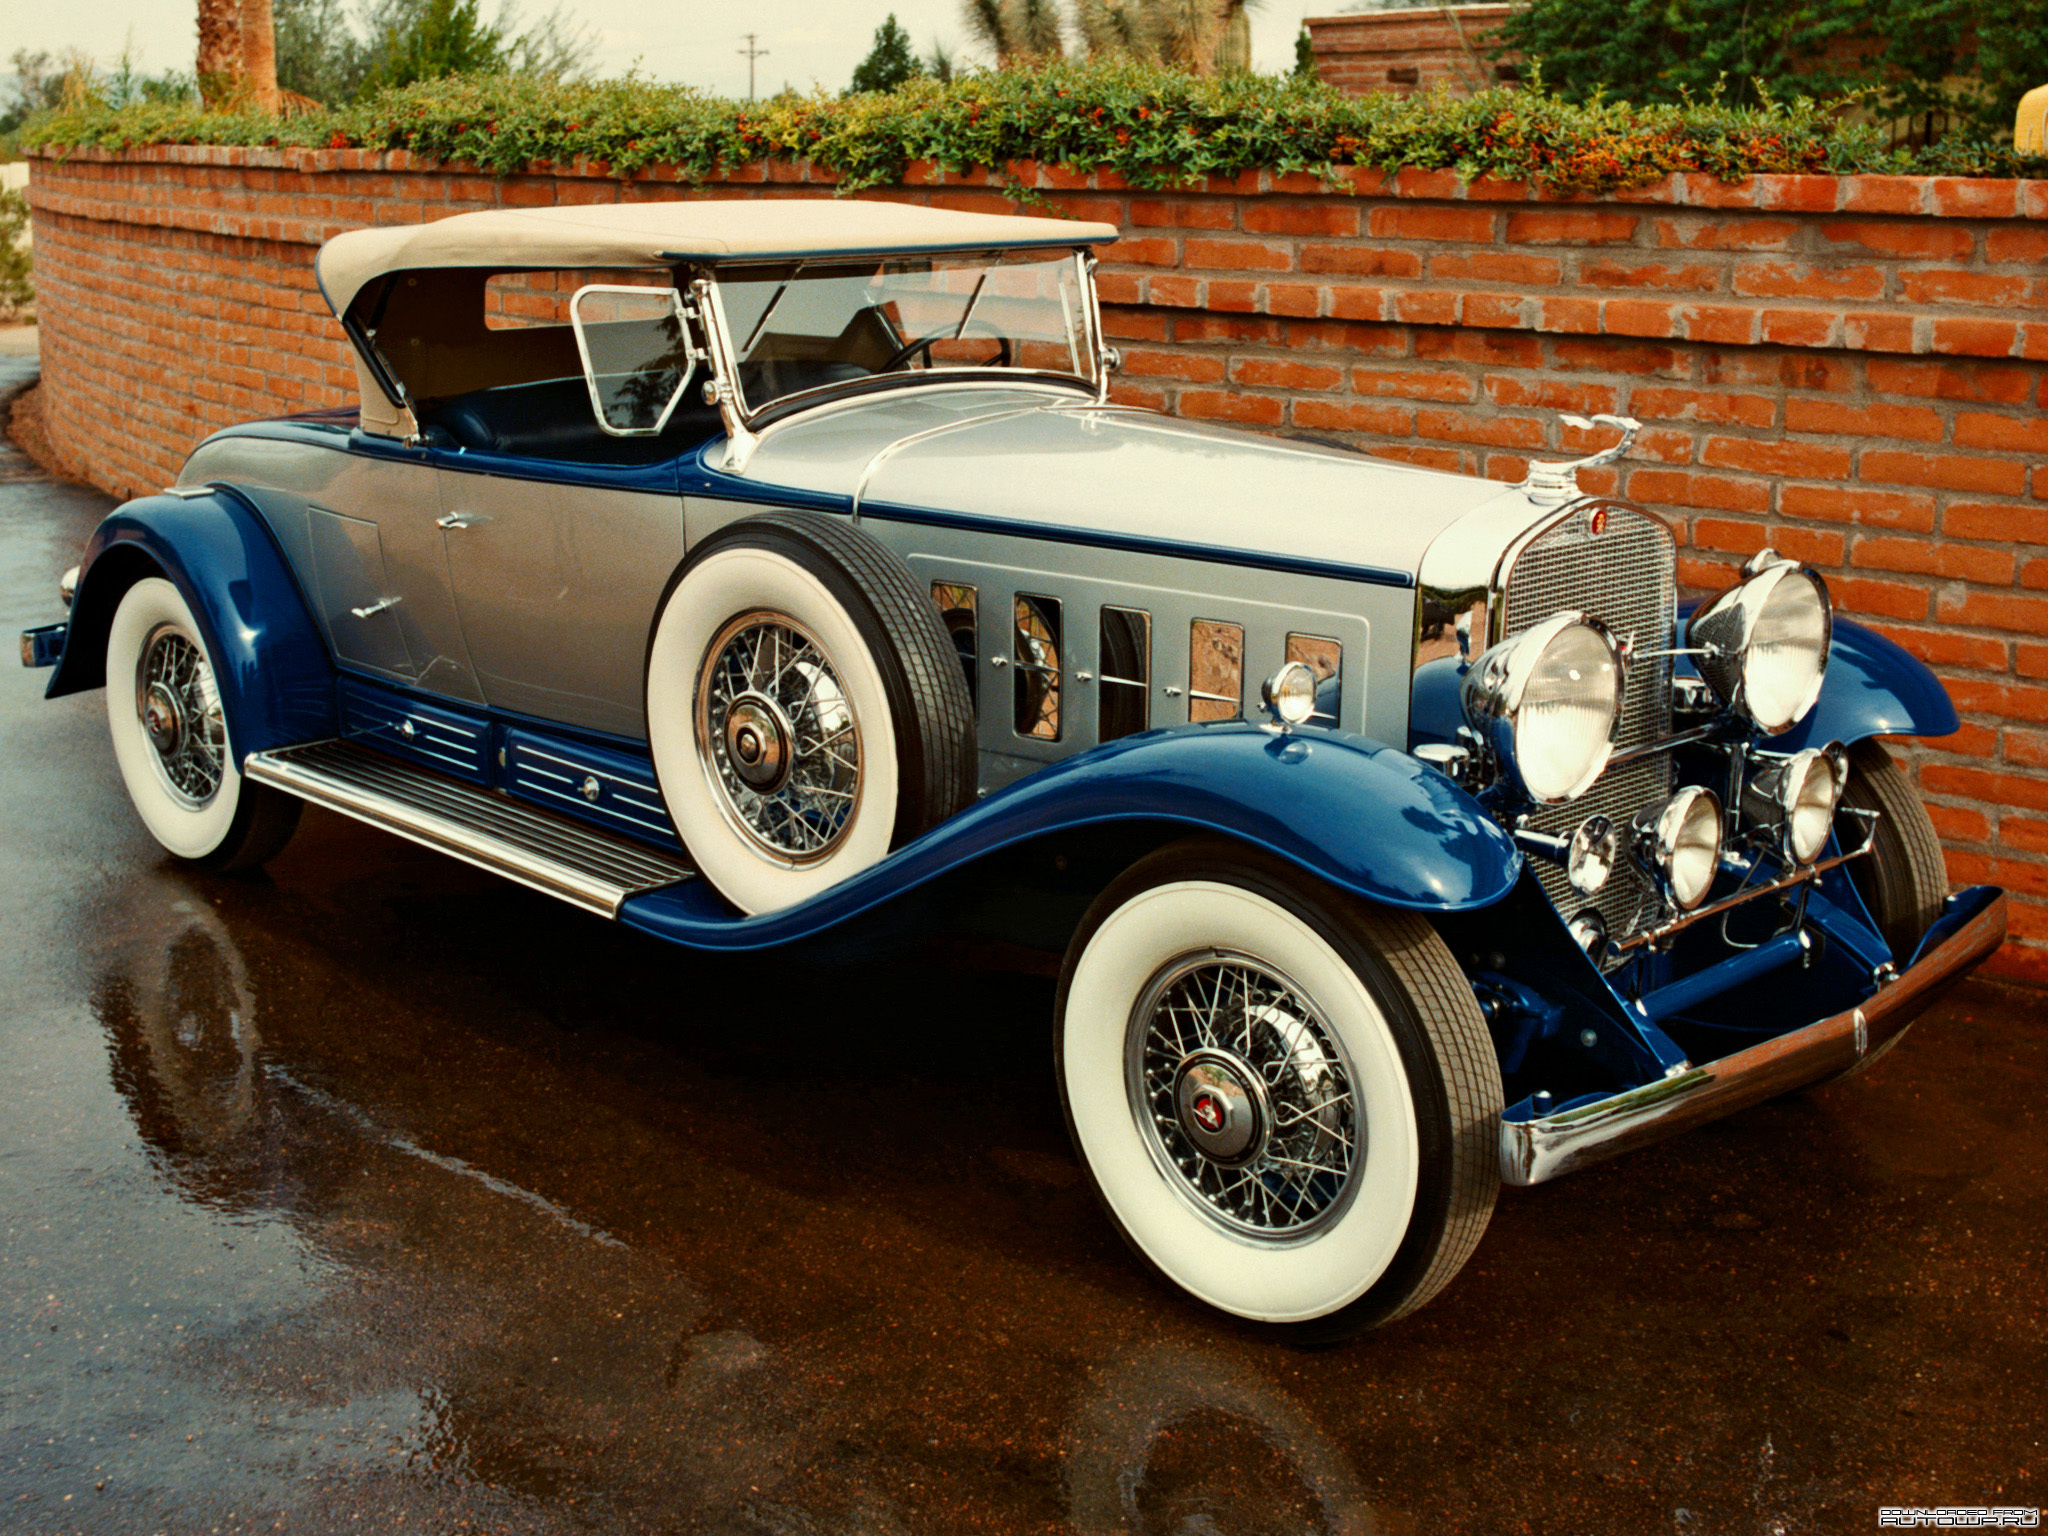 1930 Cadillac V16 Roadster High Quality Background on Wallpapers Vista